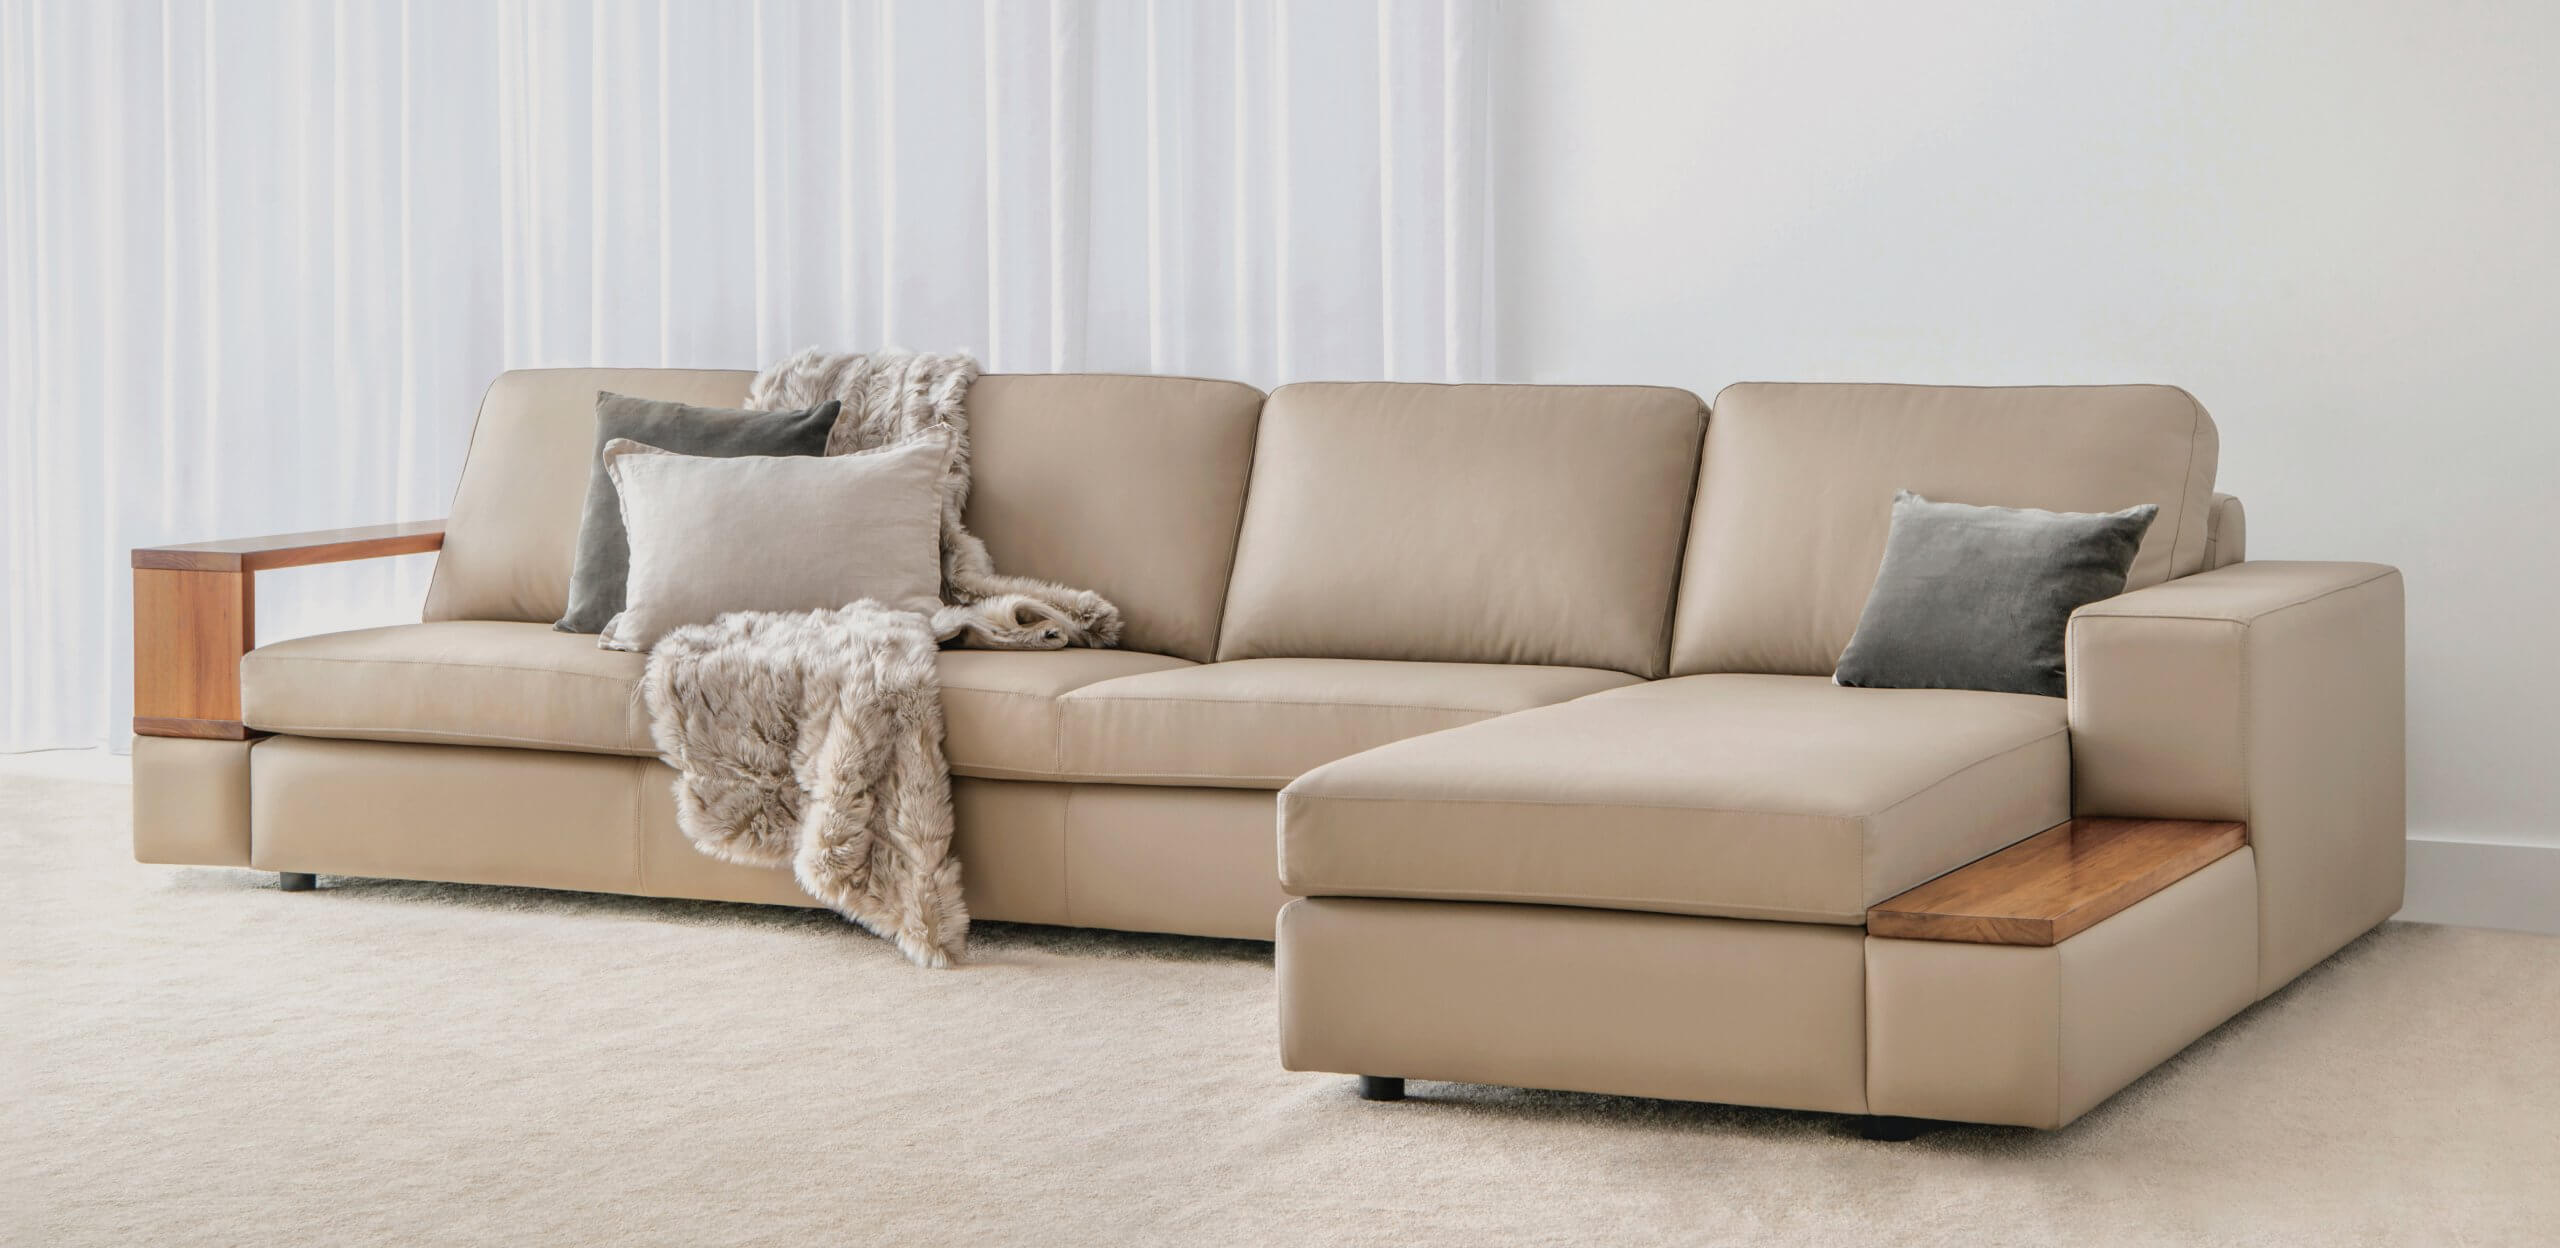 Leather Modular Sofa made in Adelaide